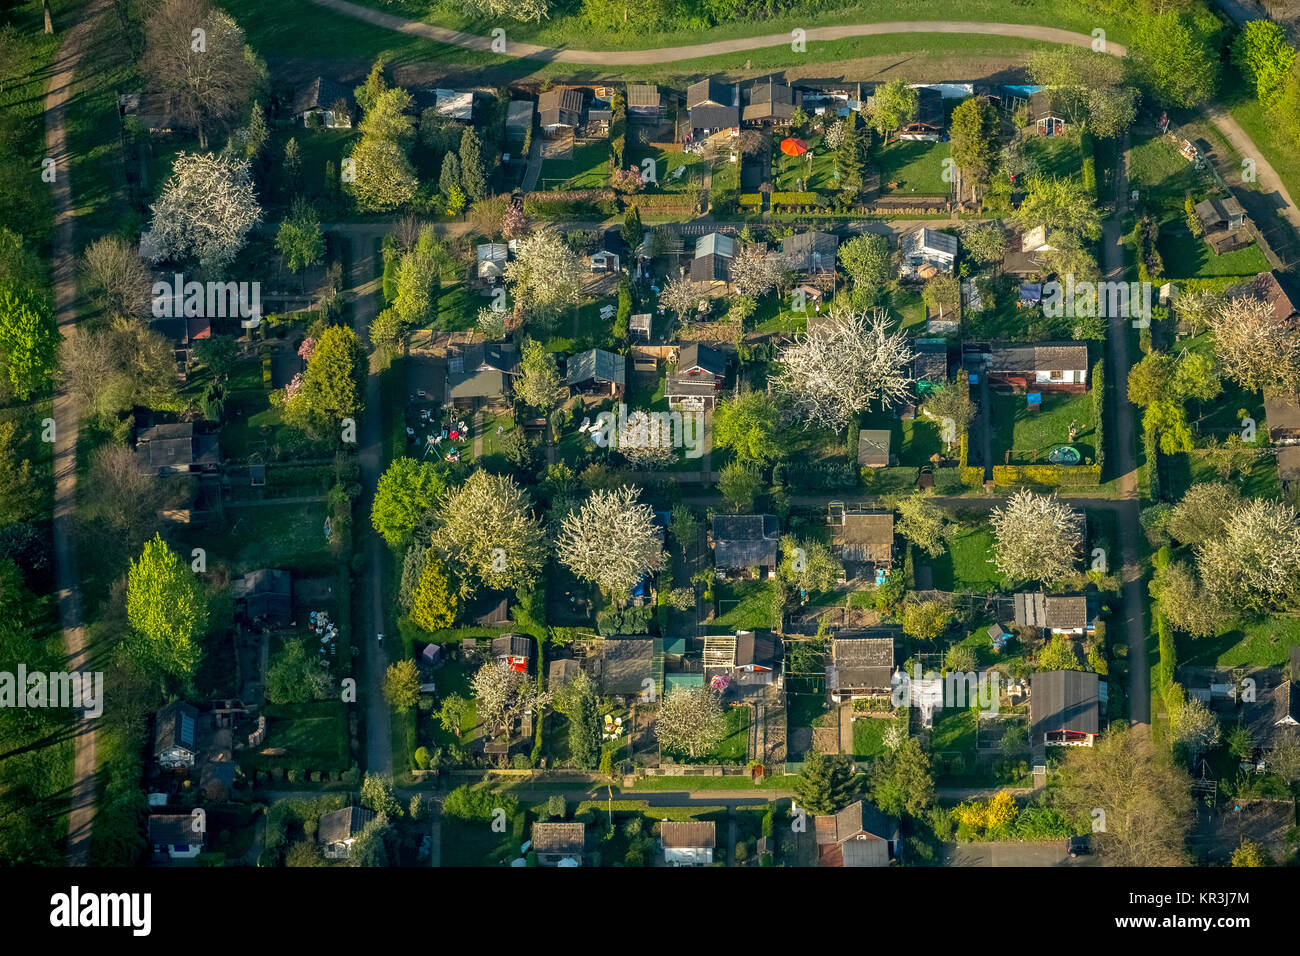 Allotment garden Nauheimer Straße, Duisburg-Neumühl, flowering trees, allotment garden, allotments, garden - Stock Image